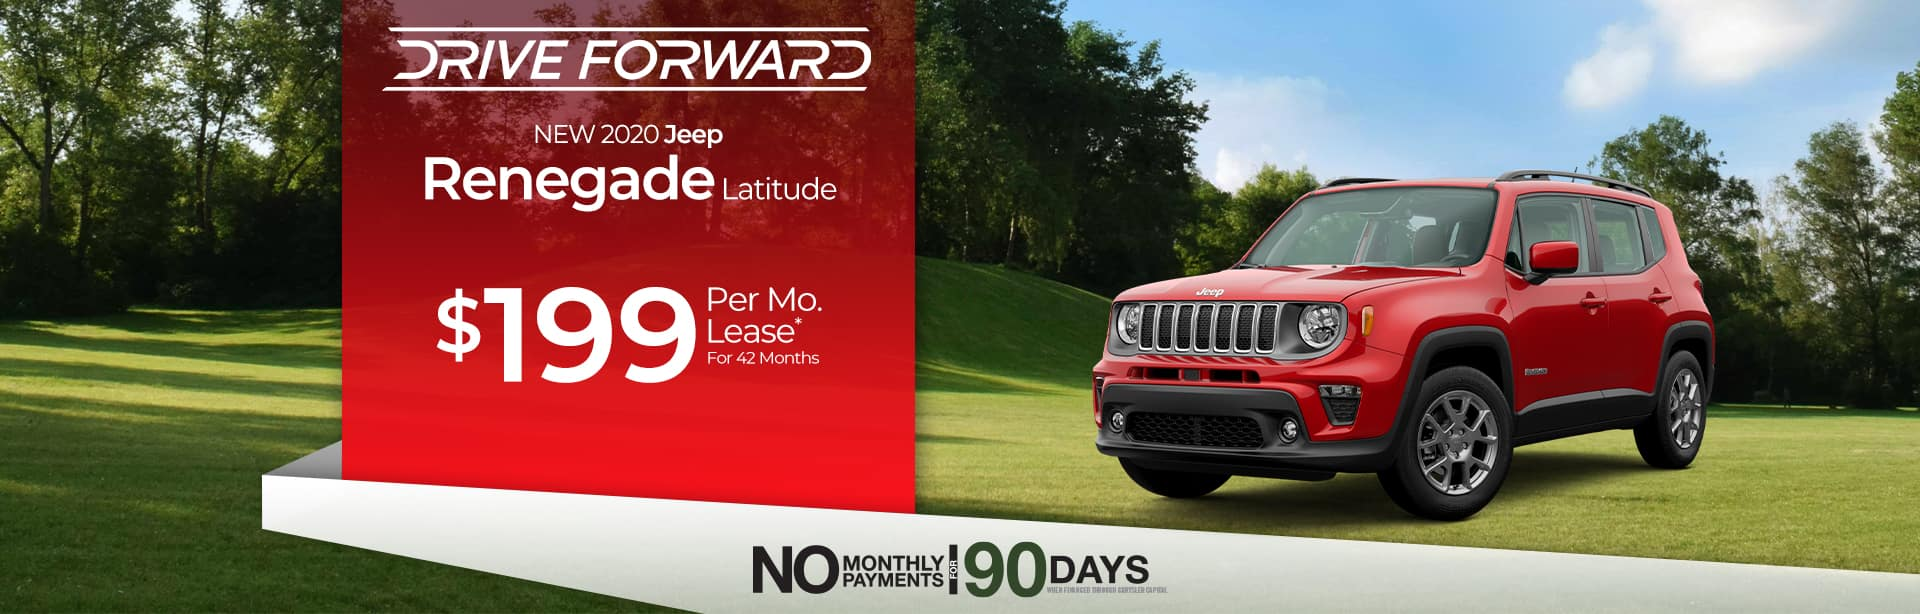 Lease a new Renegade for $199 a month in Auburn, Indiana